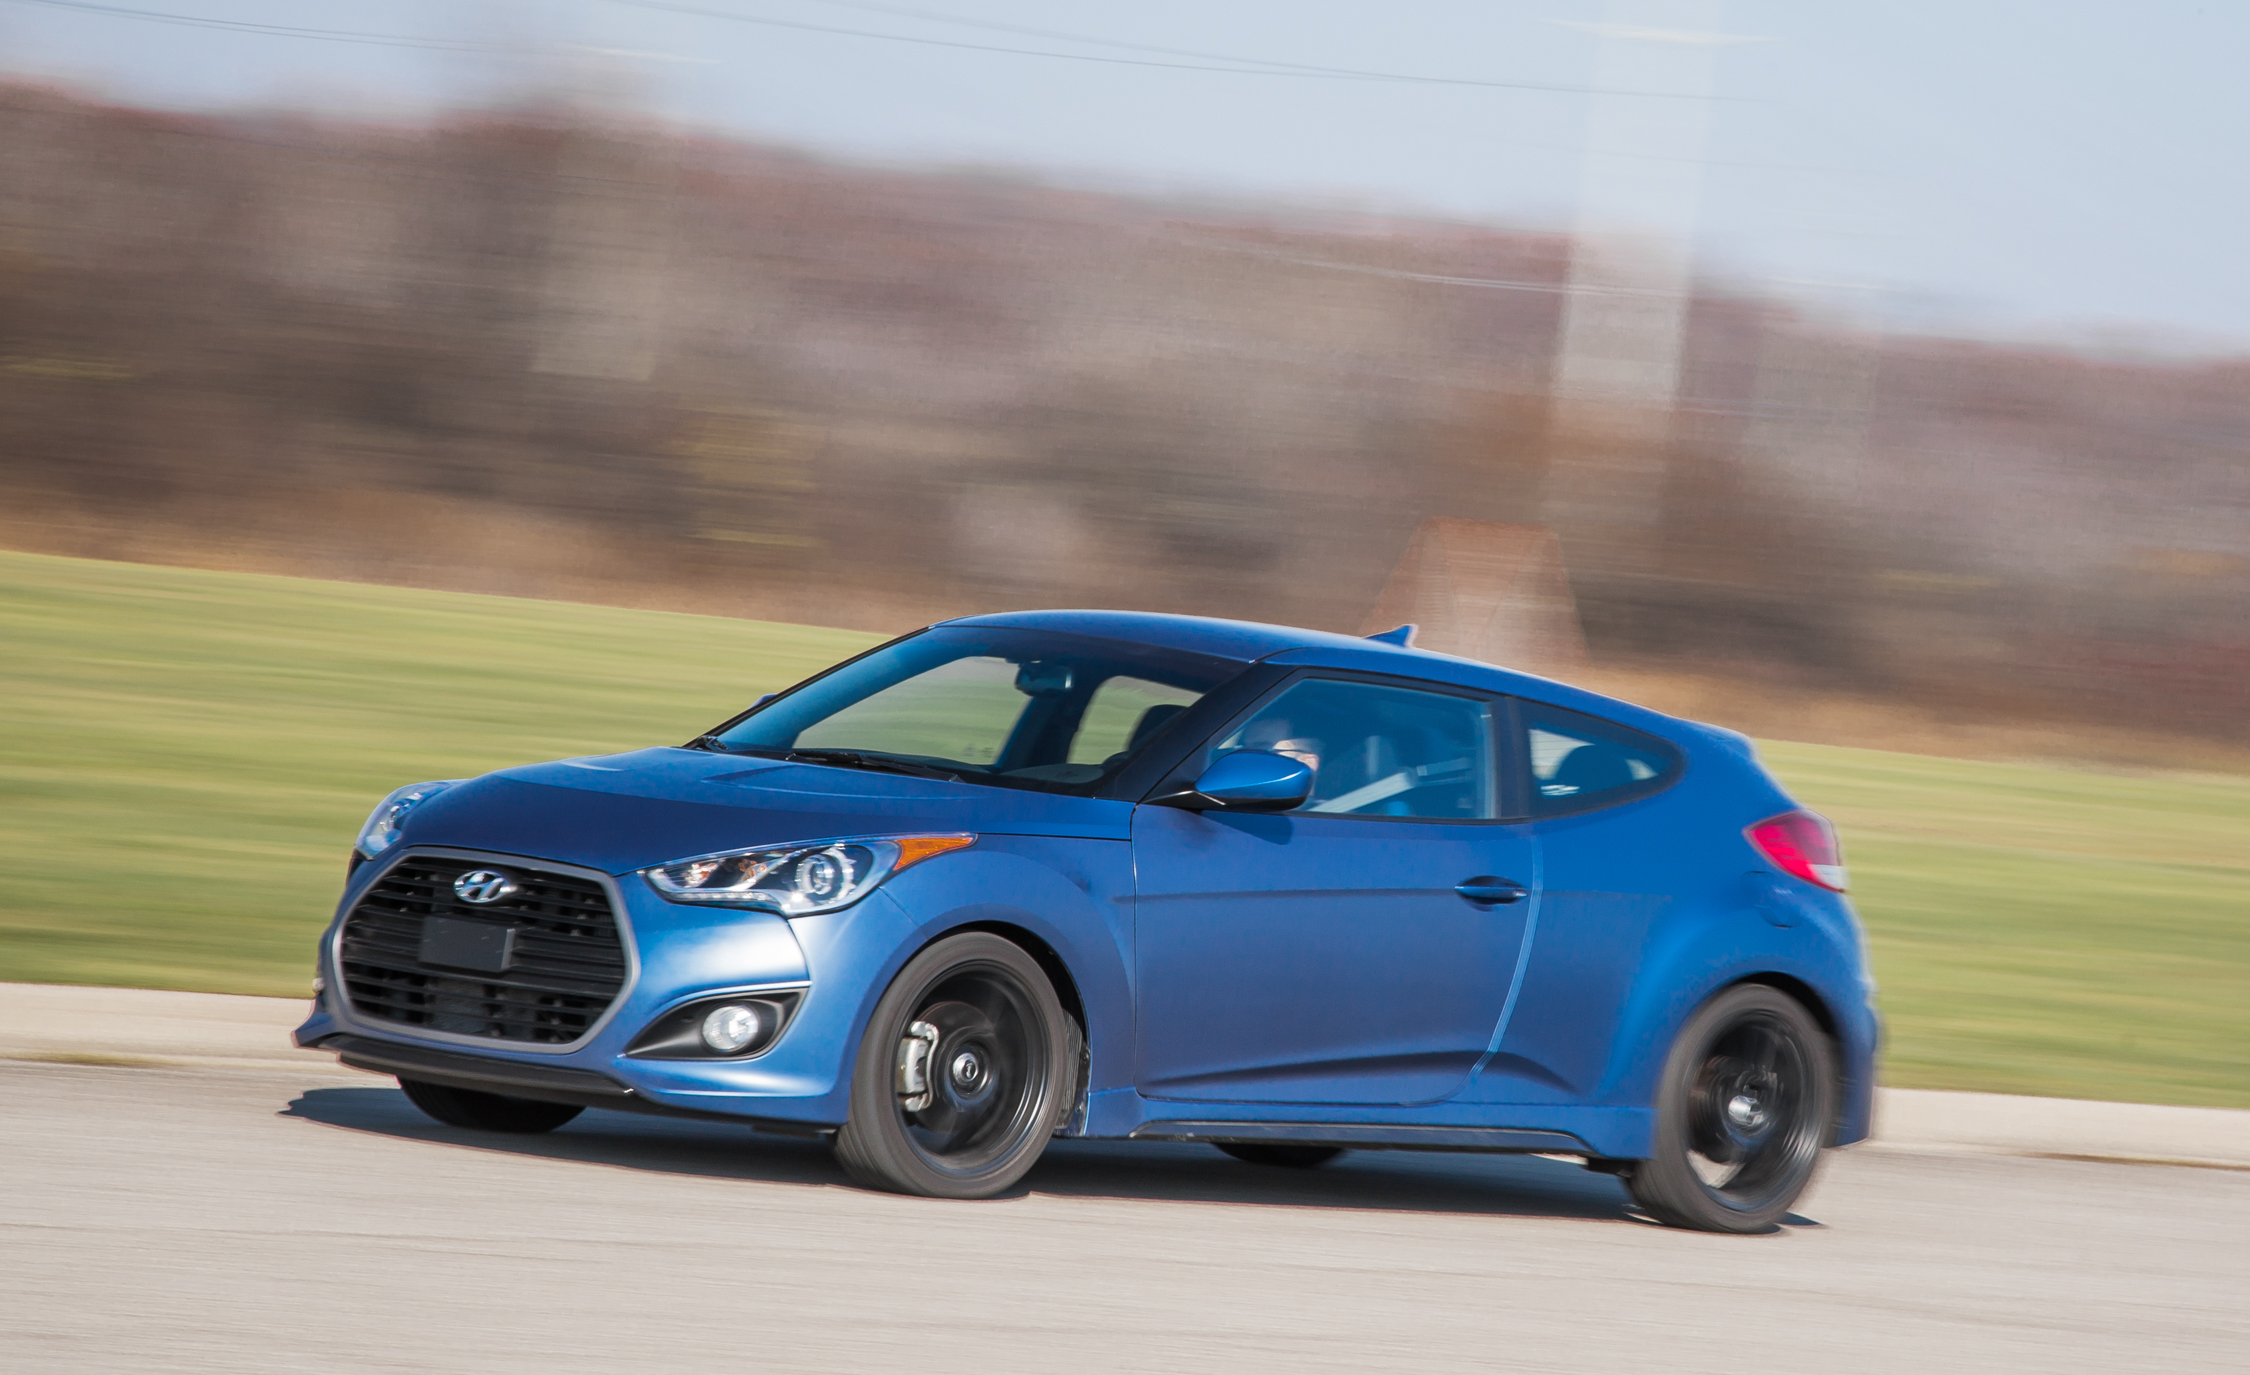 2016 Hyundai Veloster Turbo Rally Edition Test Drive